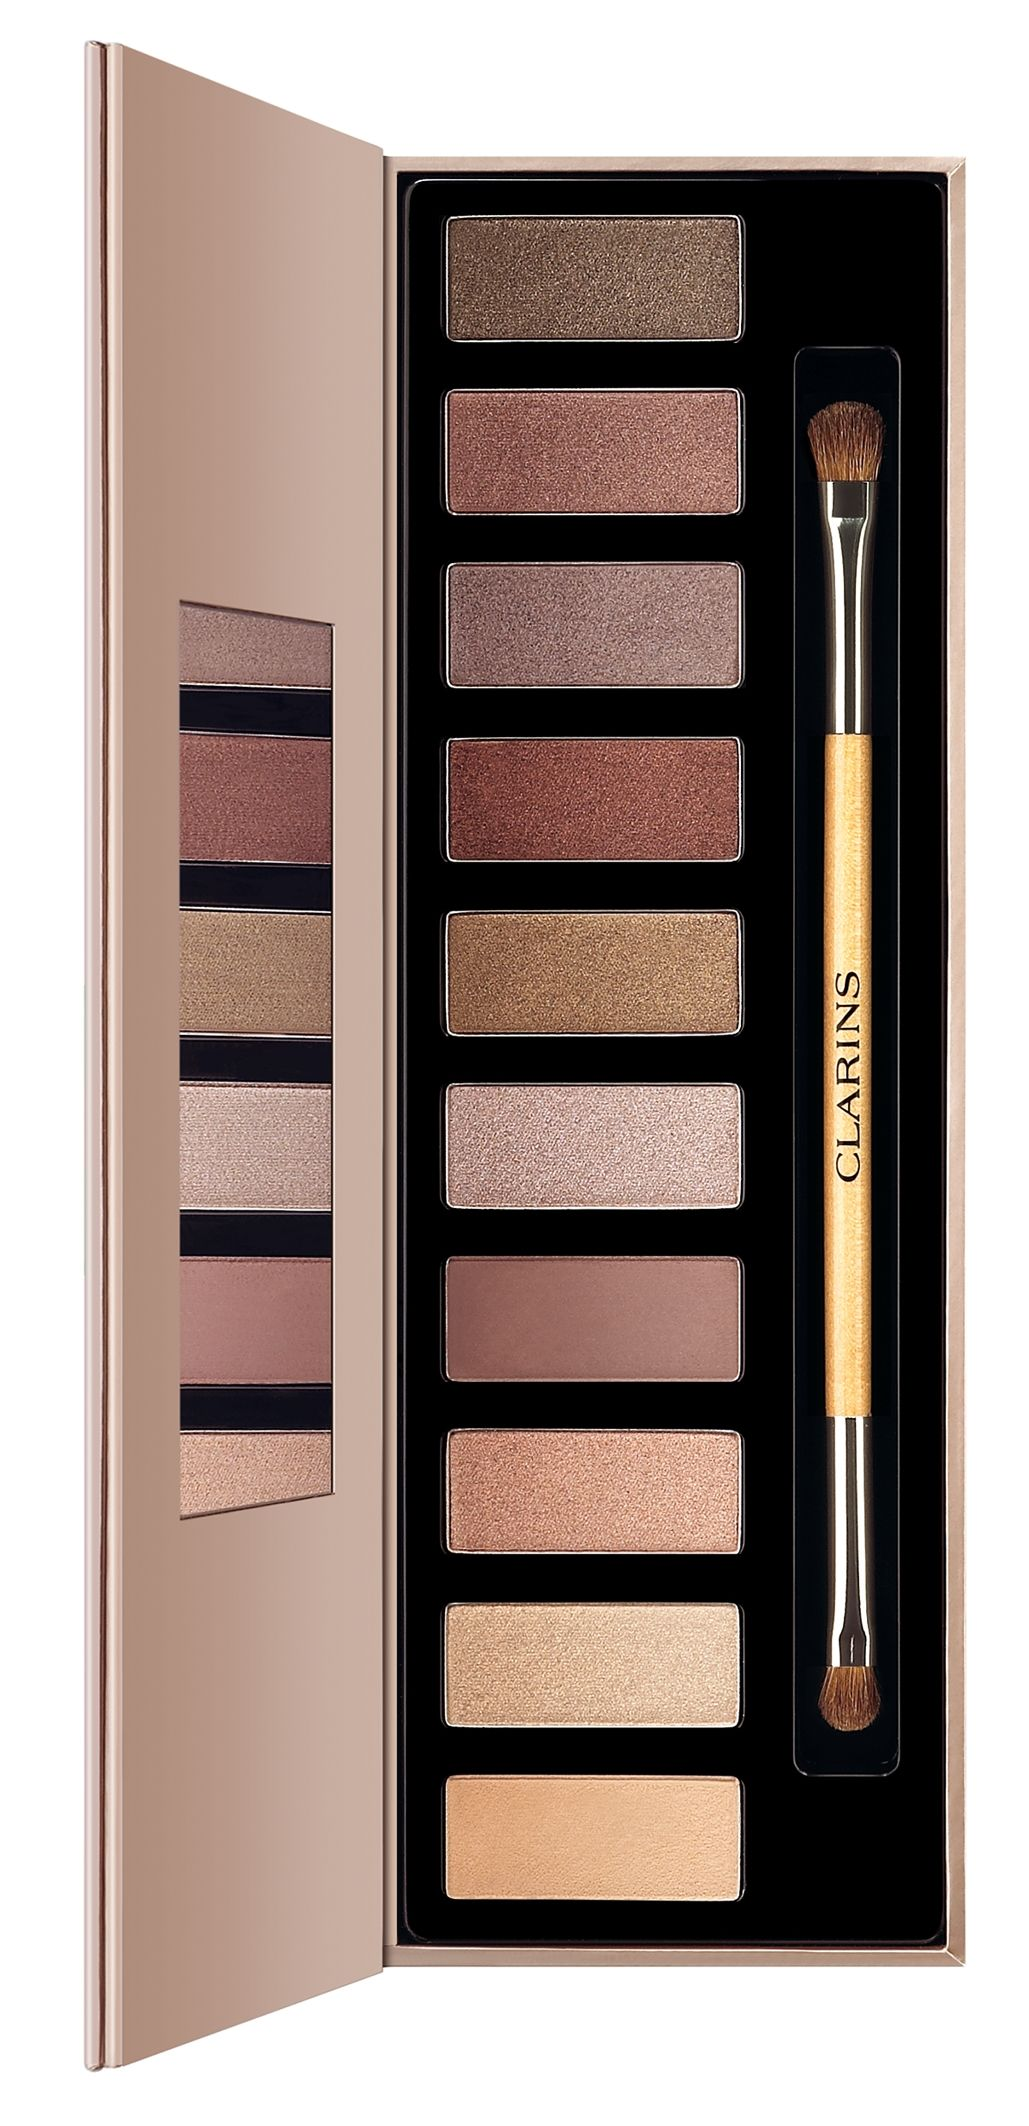 Paleta de ojos Clarins the Essentials para las fiestas de 2013 – Musings of a Muse  – Maquillaje